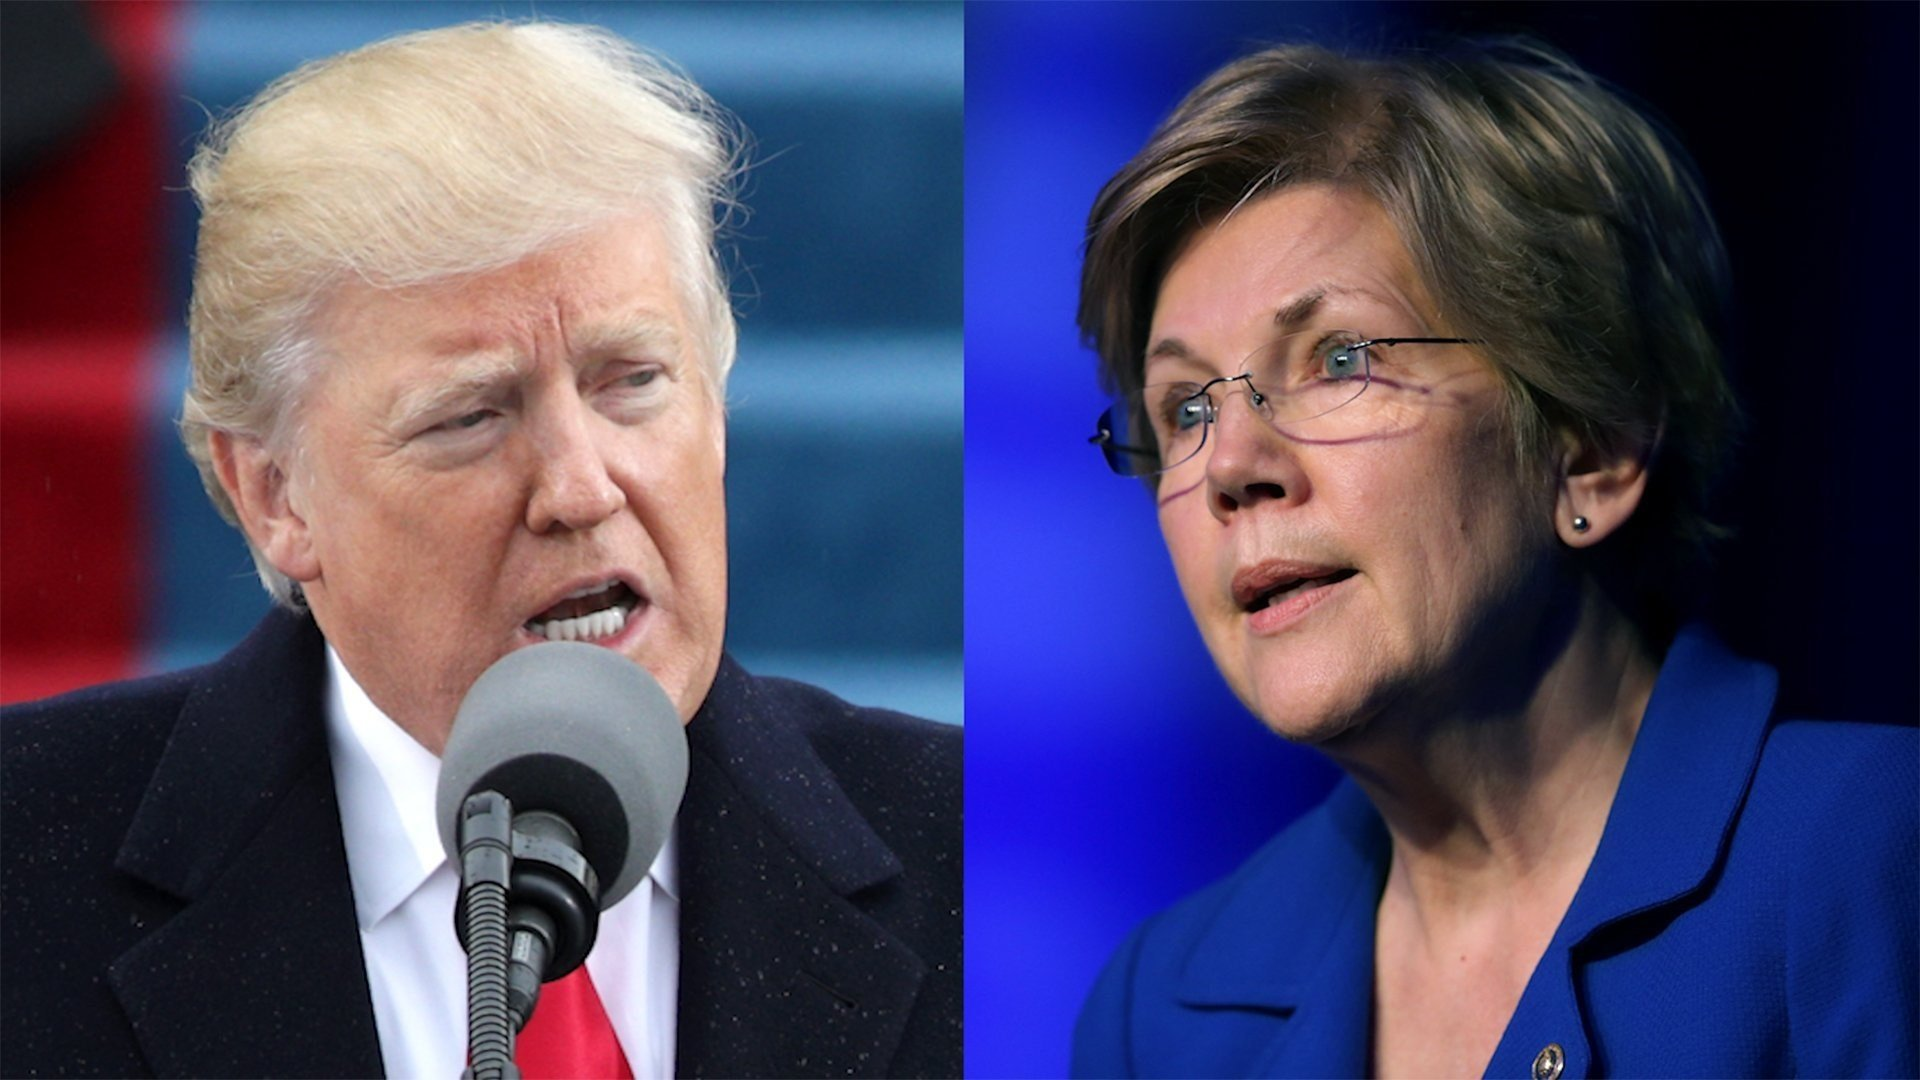 President Donald Trump trades on identity politics, and that is what he's doing with Sen. Elizabeth Warren.